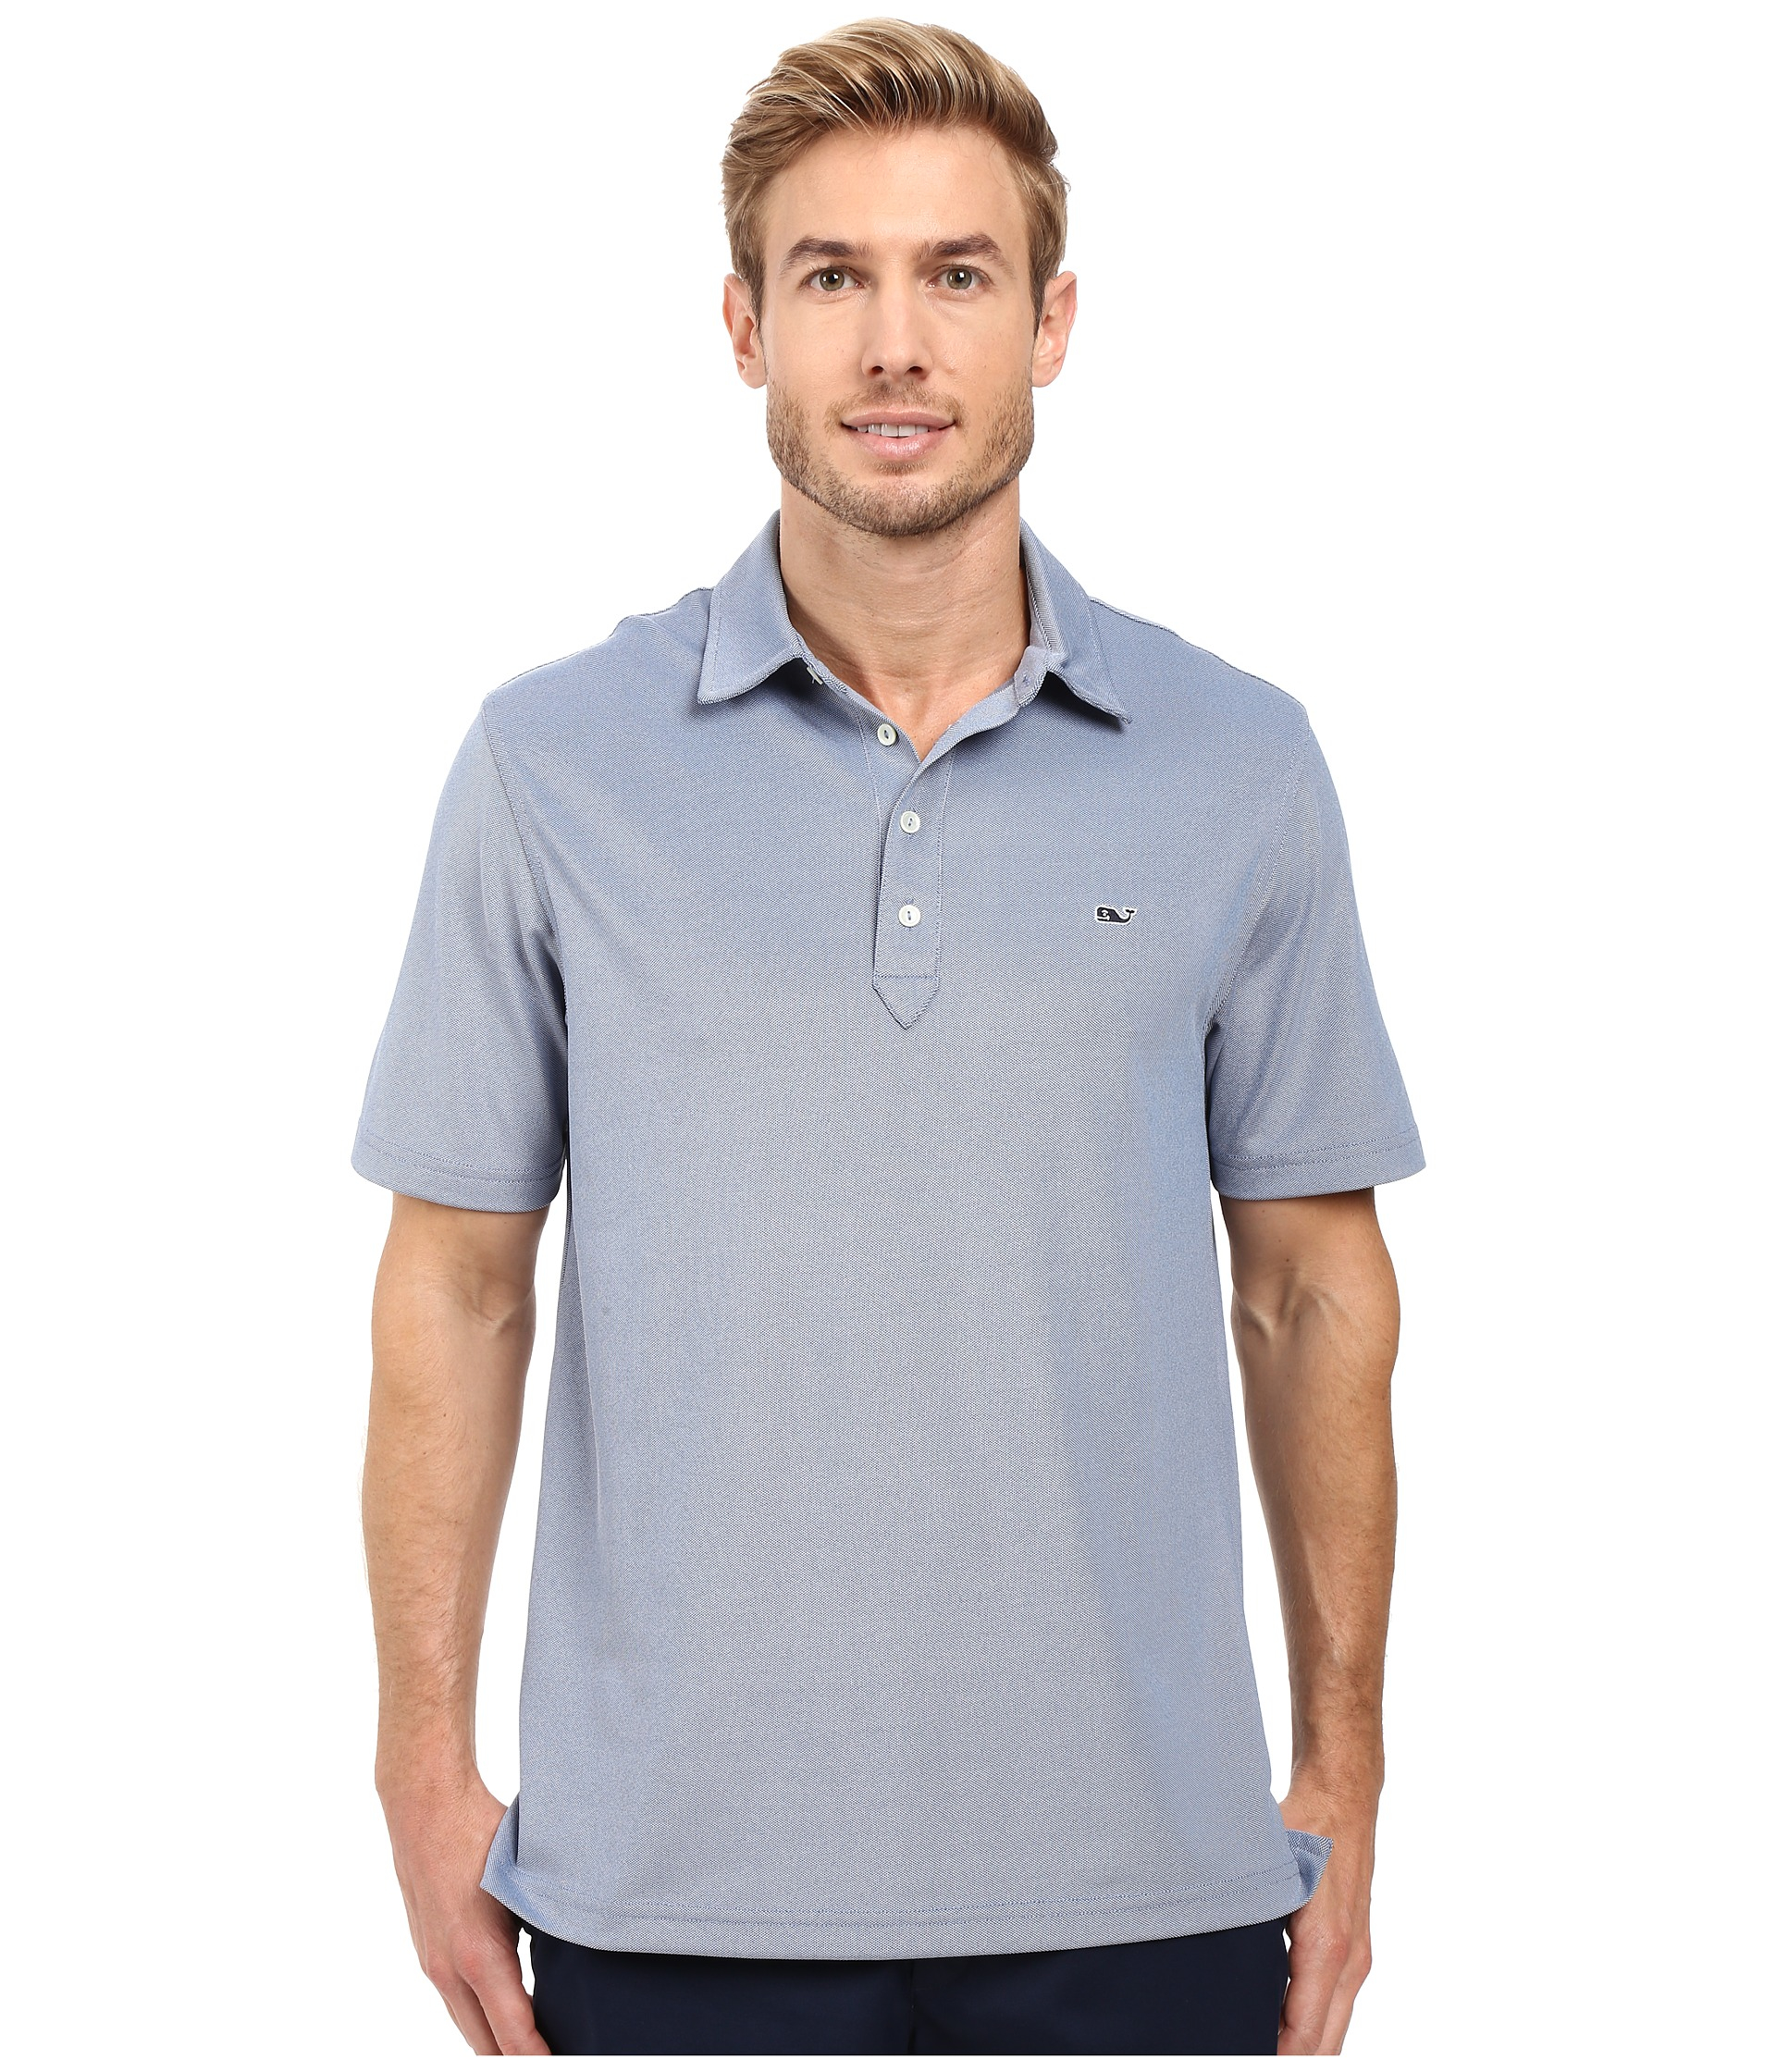 2df0f18544 Lyst - Vineyard Vines Marshall Solid Pique Performance Polo for Men